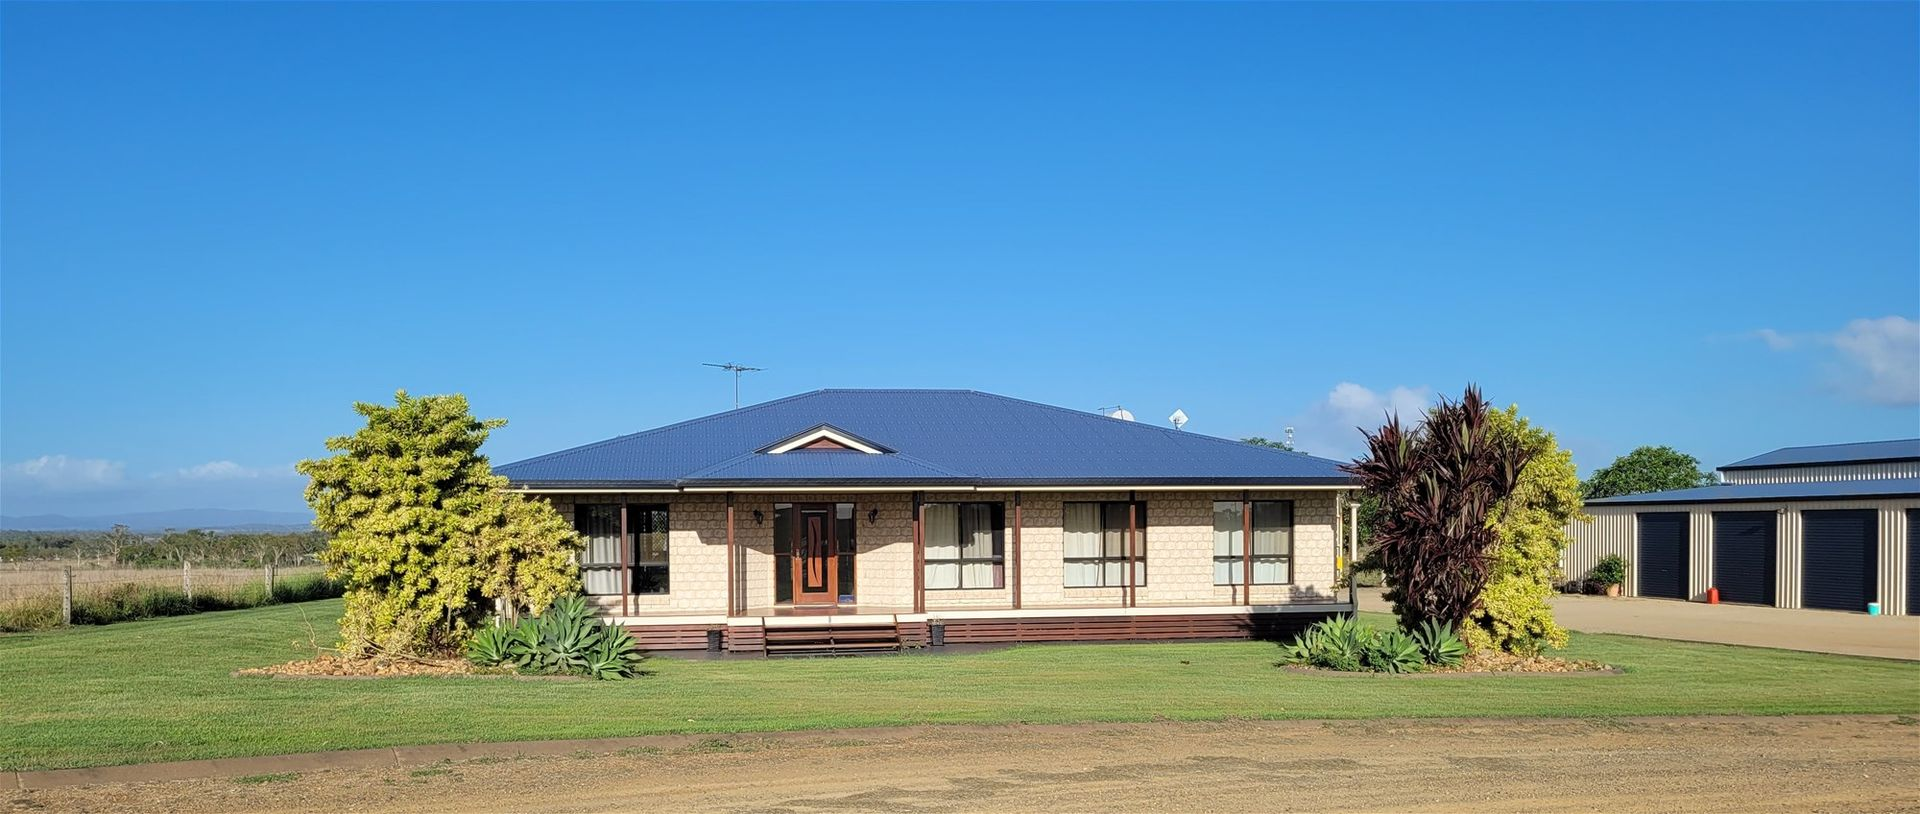 127 Mckenzie Road, Alton Downs QLD 4702, Image 0